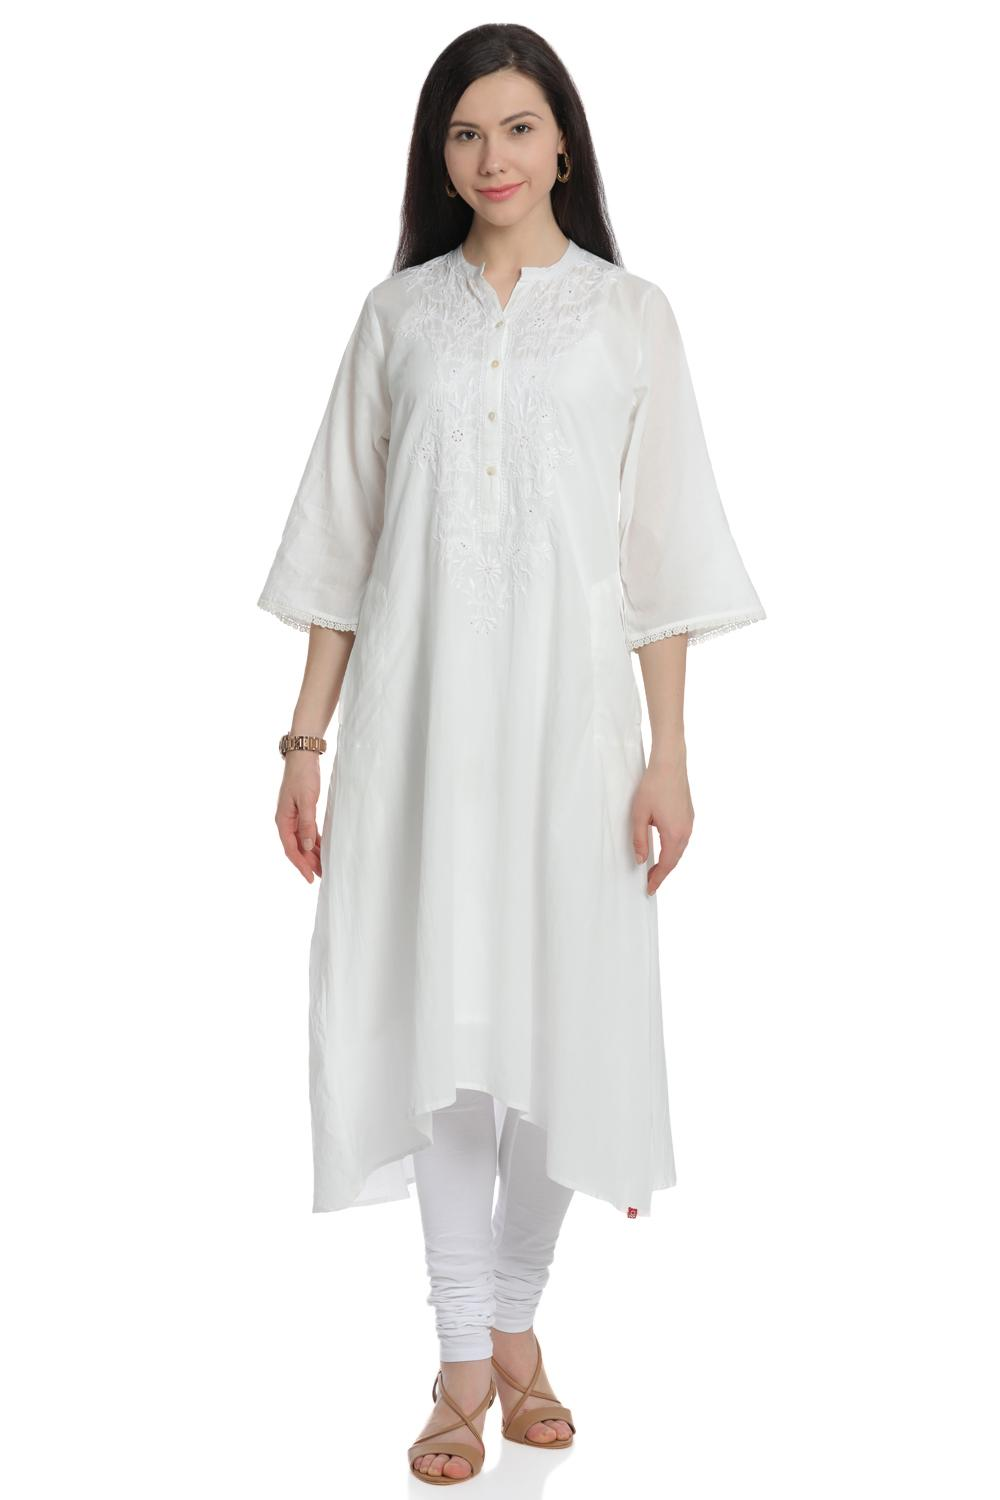 Off White A-Line High Low Cotton Kurta - CHIKANKA1